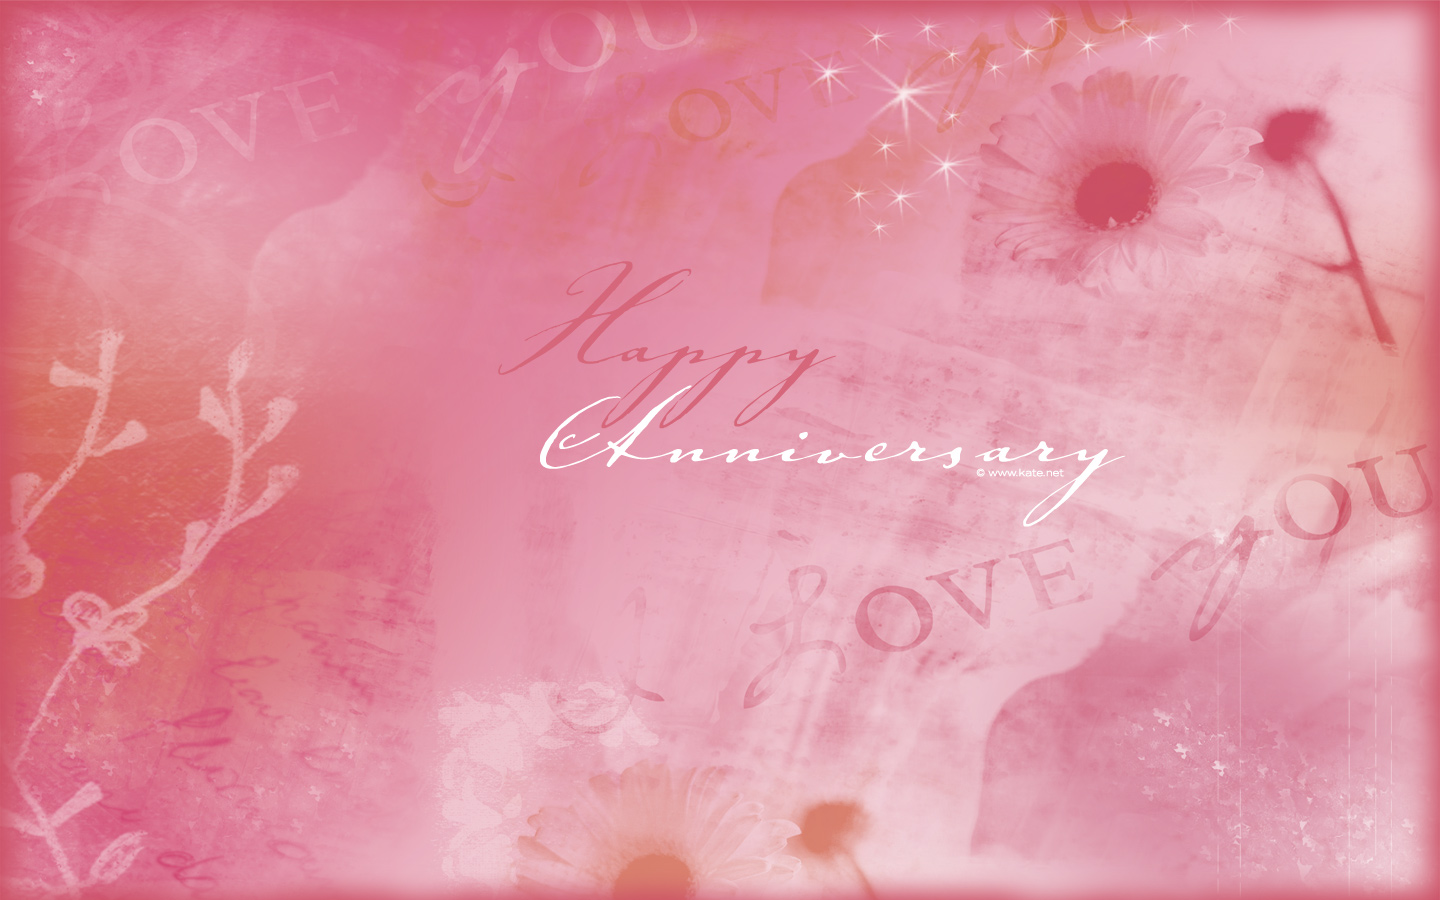 Anniversary Wallpapers by Kate.net